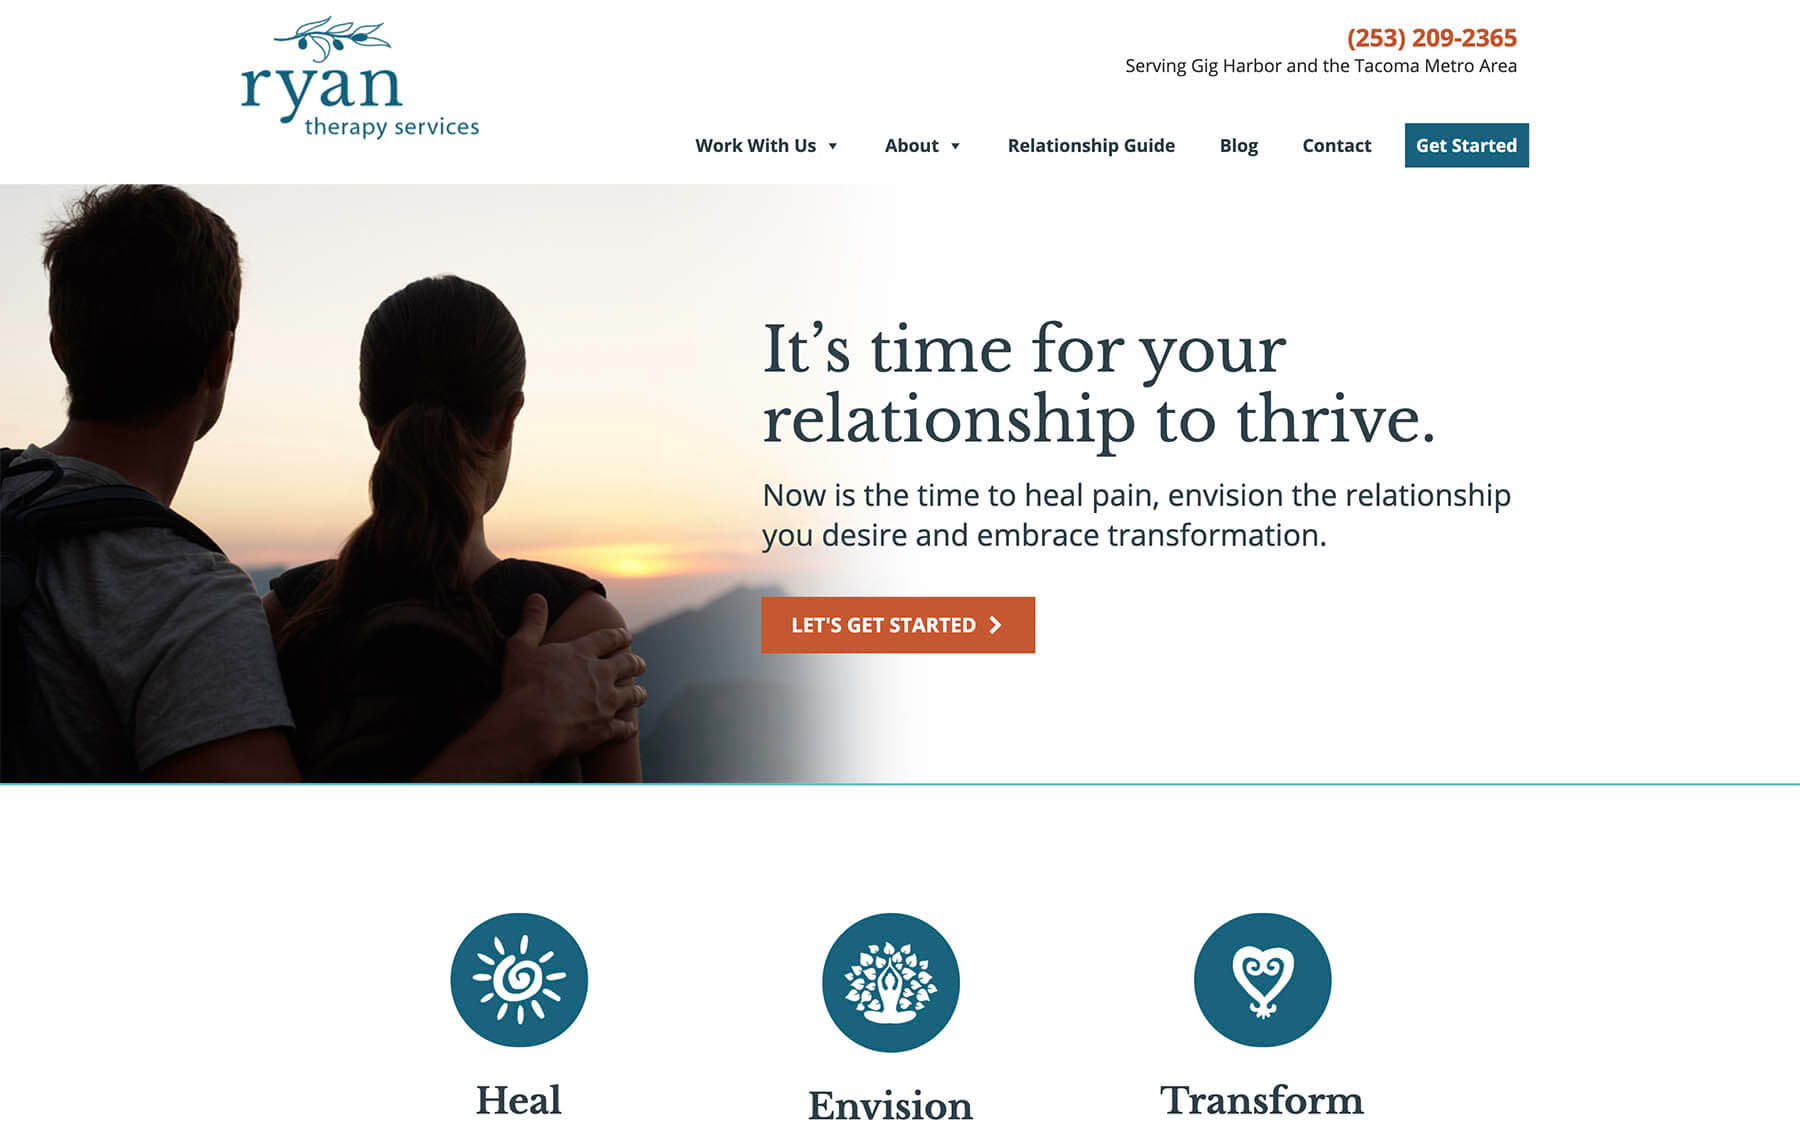 Ryan Therapy – example of Above the Fold – McBreen Marketing